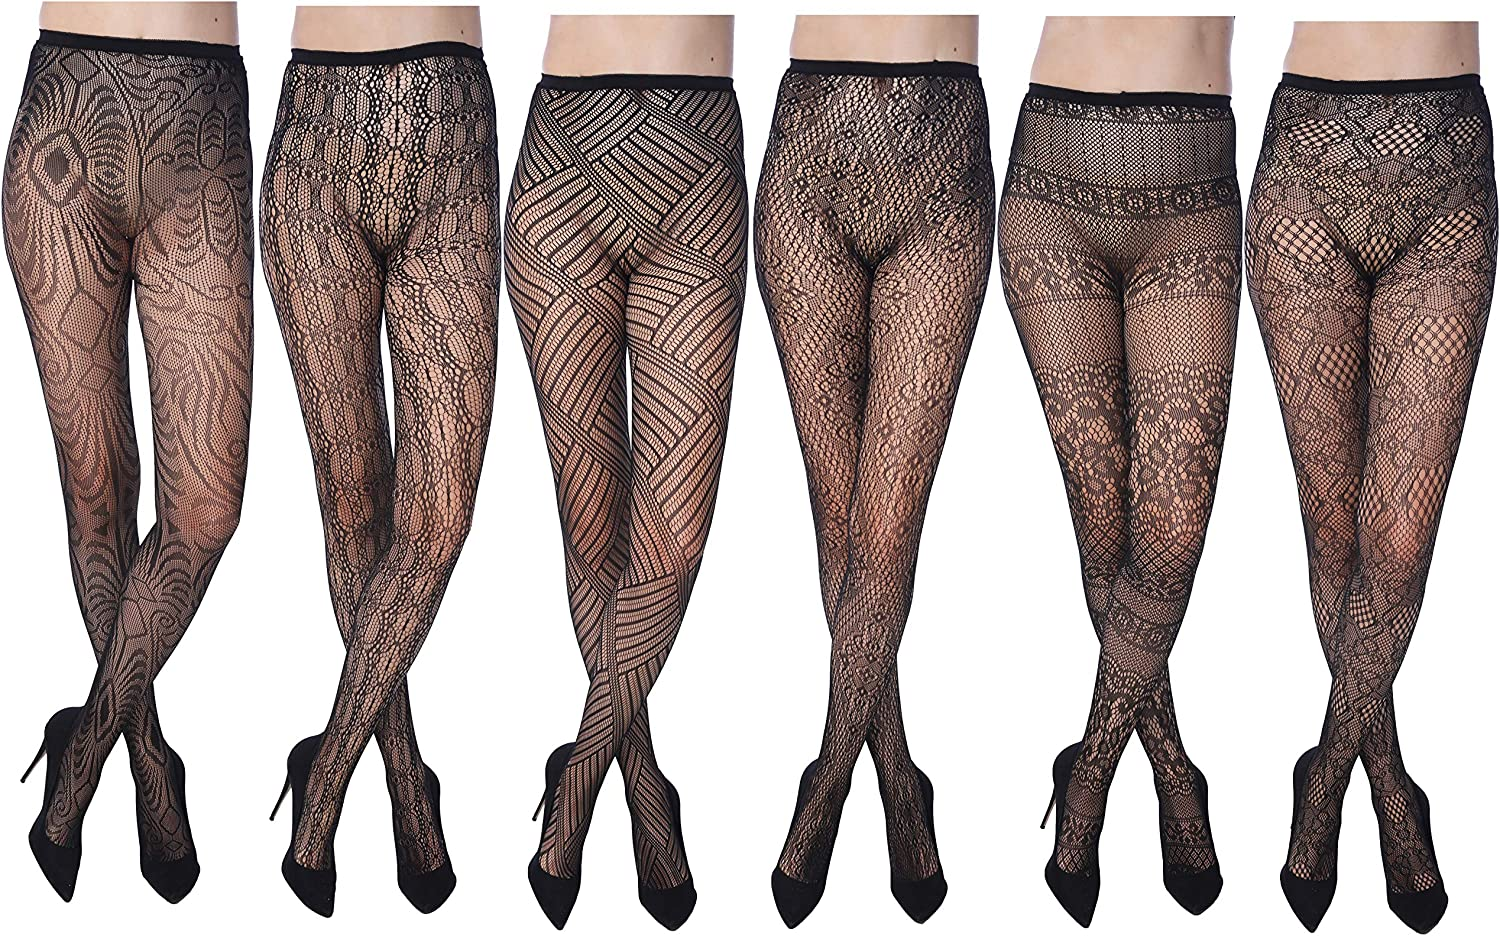 Frenchic Women's Fishnet Lace Stockings Tights Sexy Pantyhose Plus Sizes (Pack of 6)